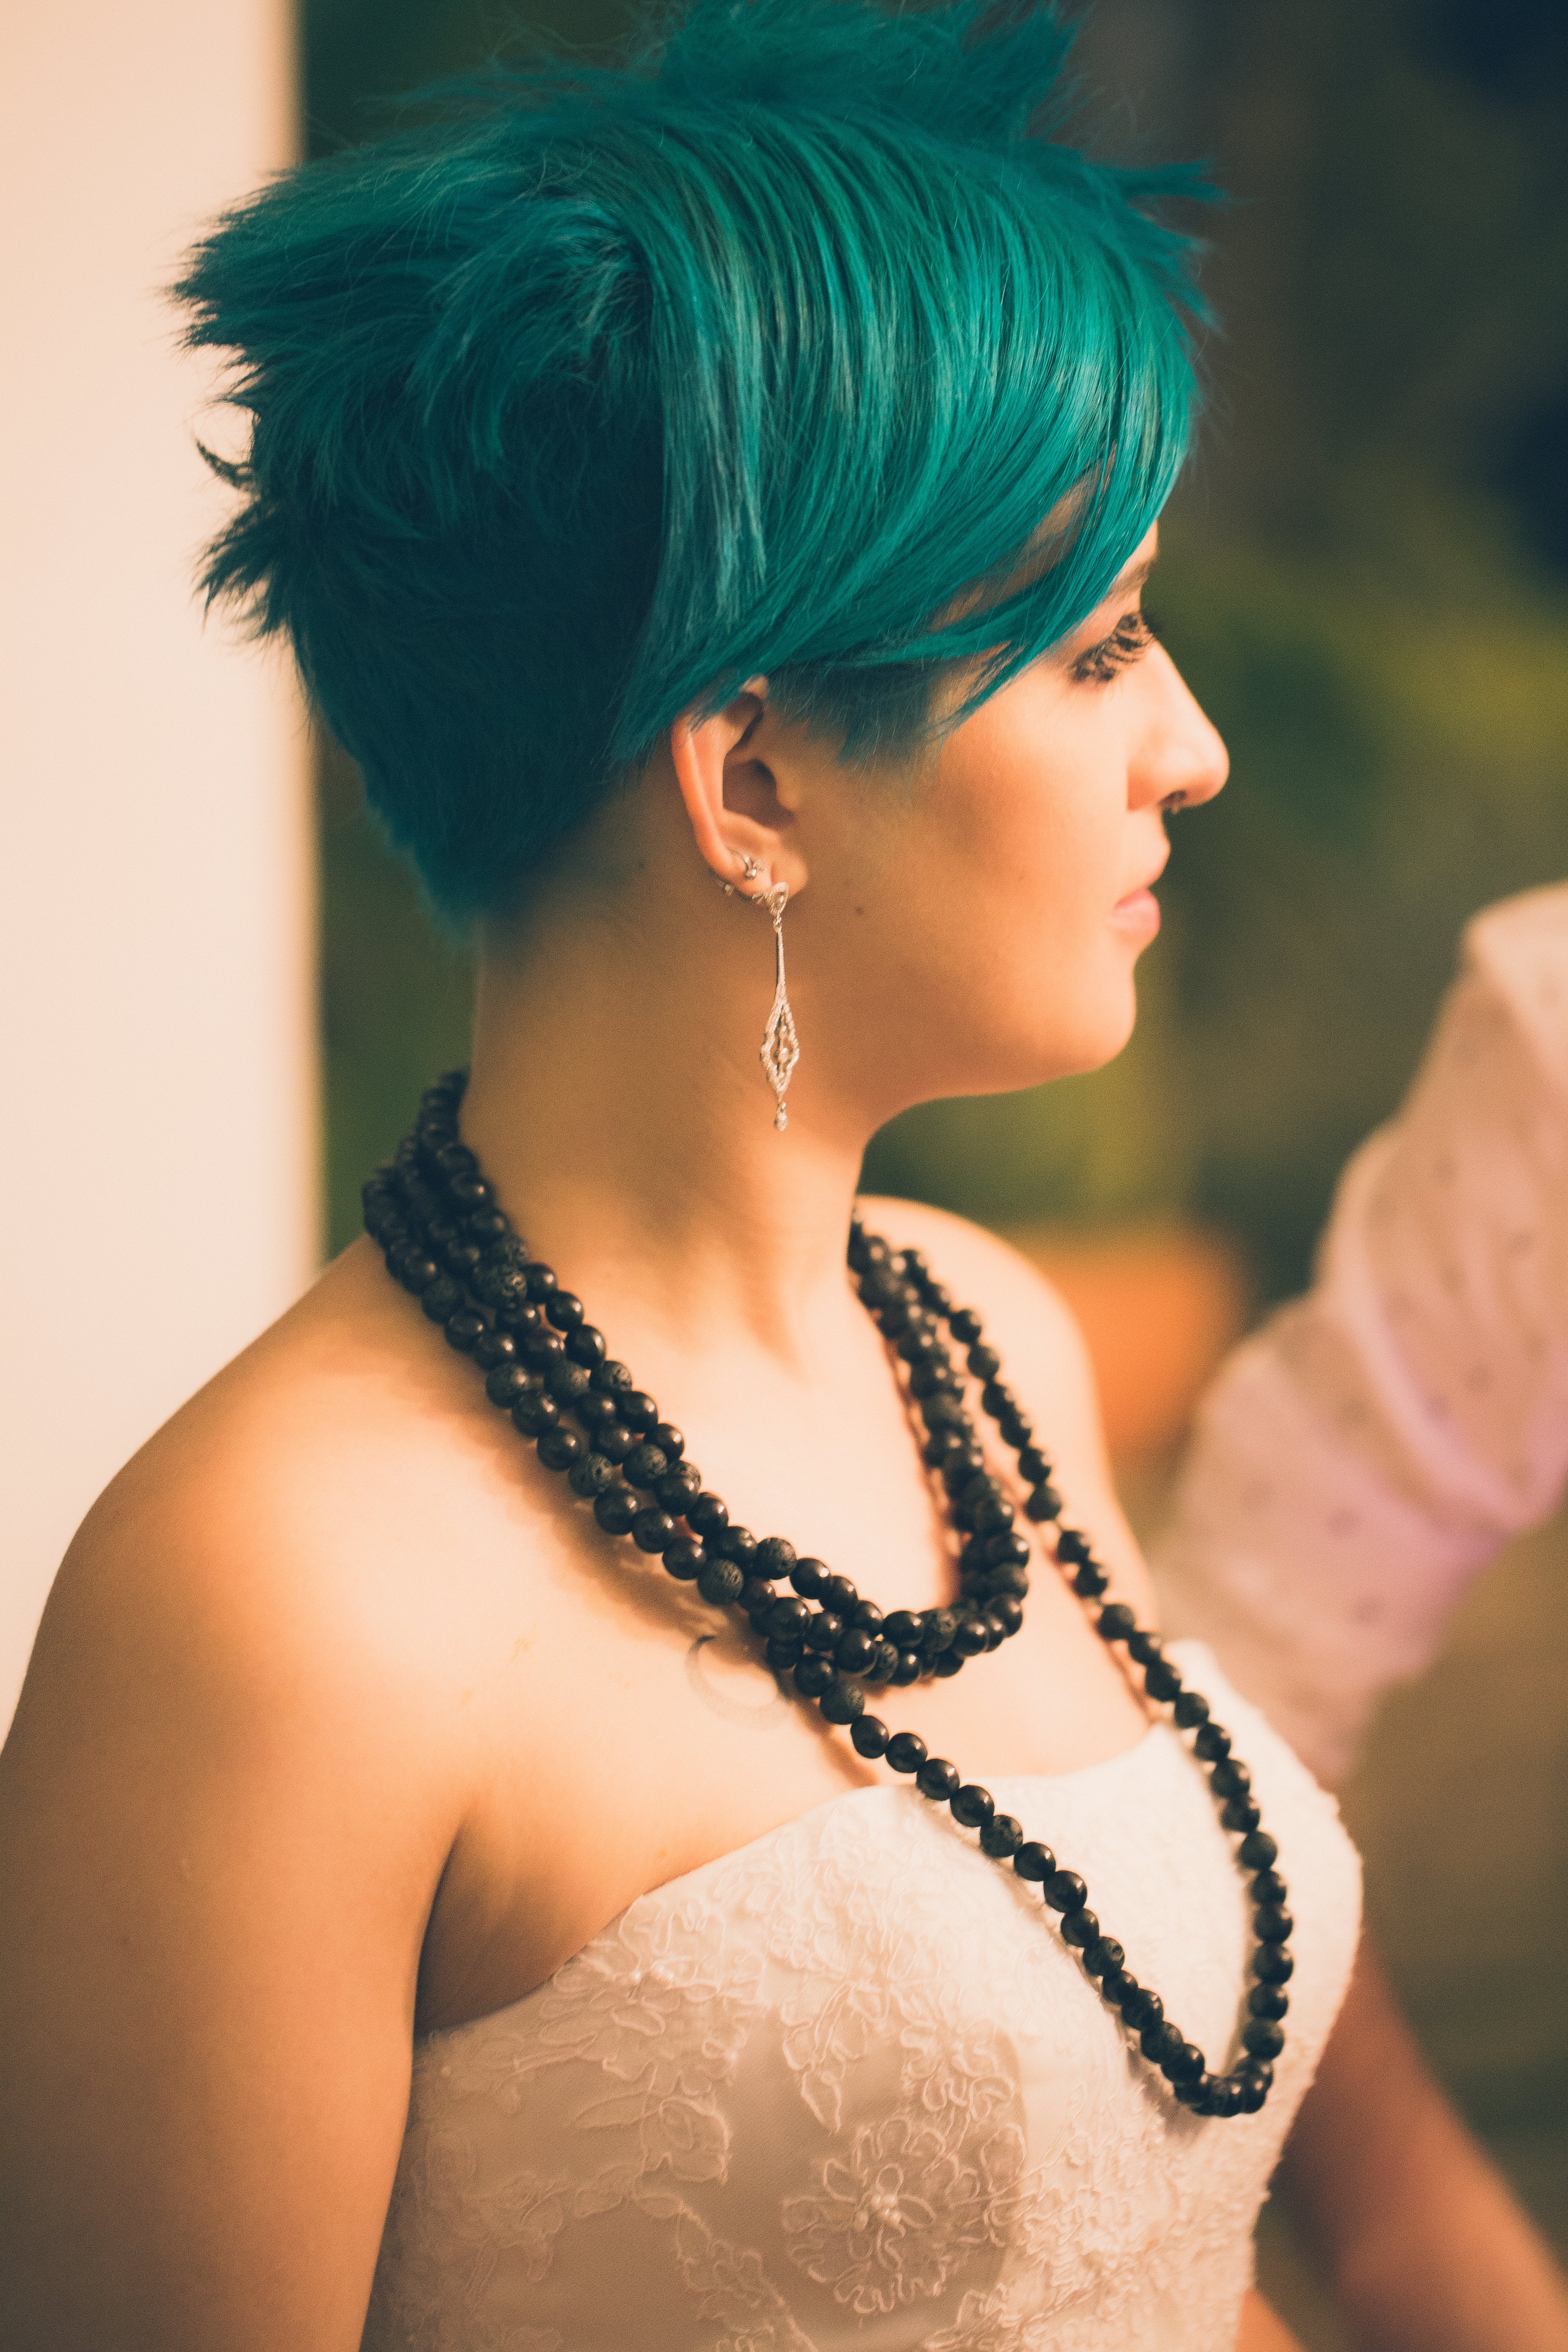 Tilt Shift Lens Photography of Woman Wearing Beaded Black Necklace